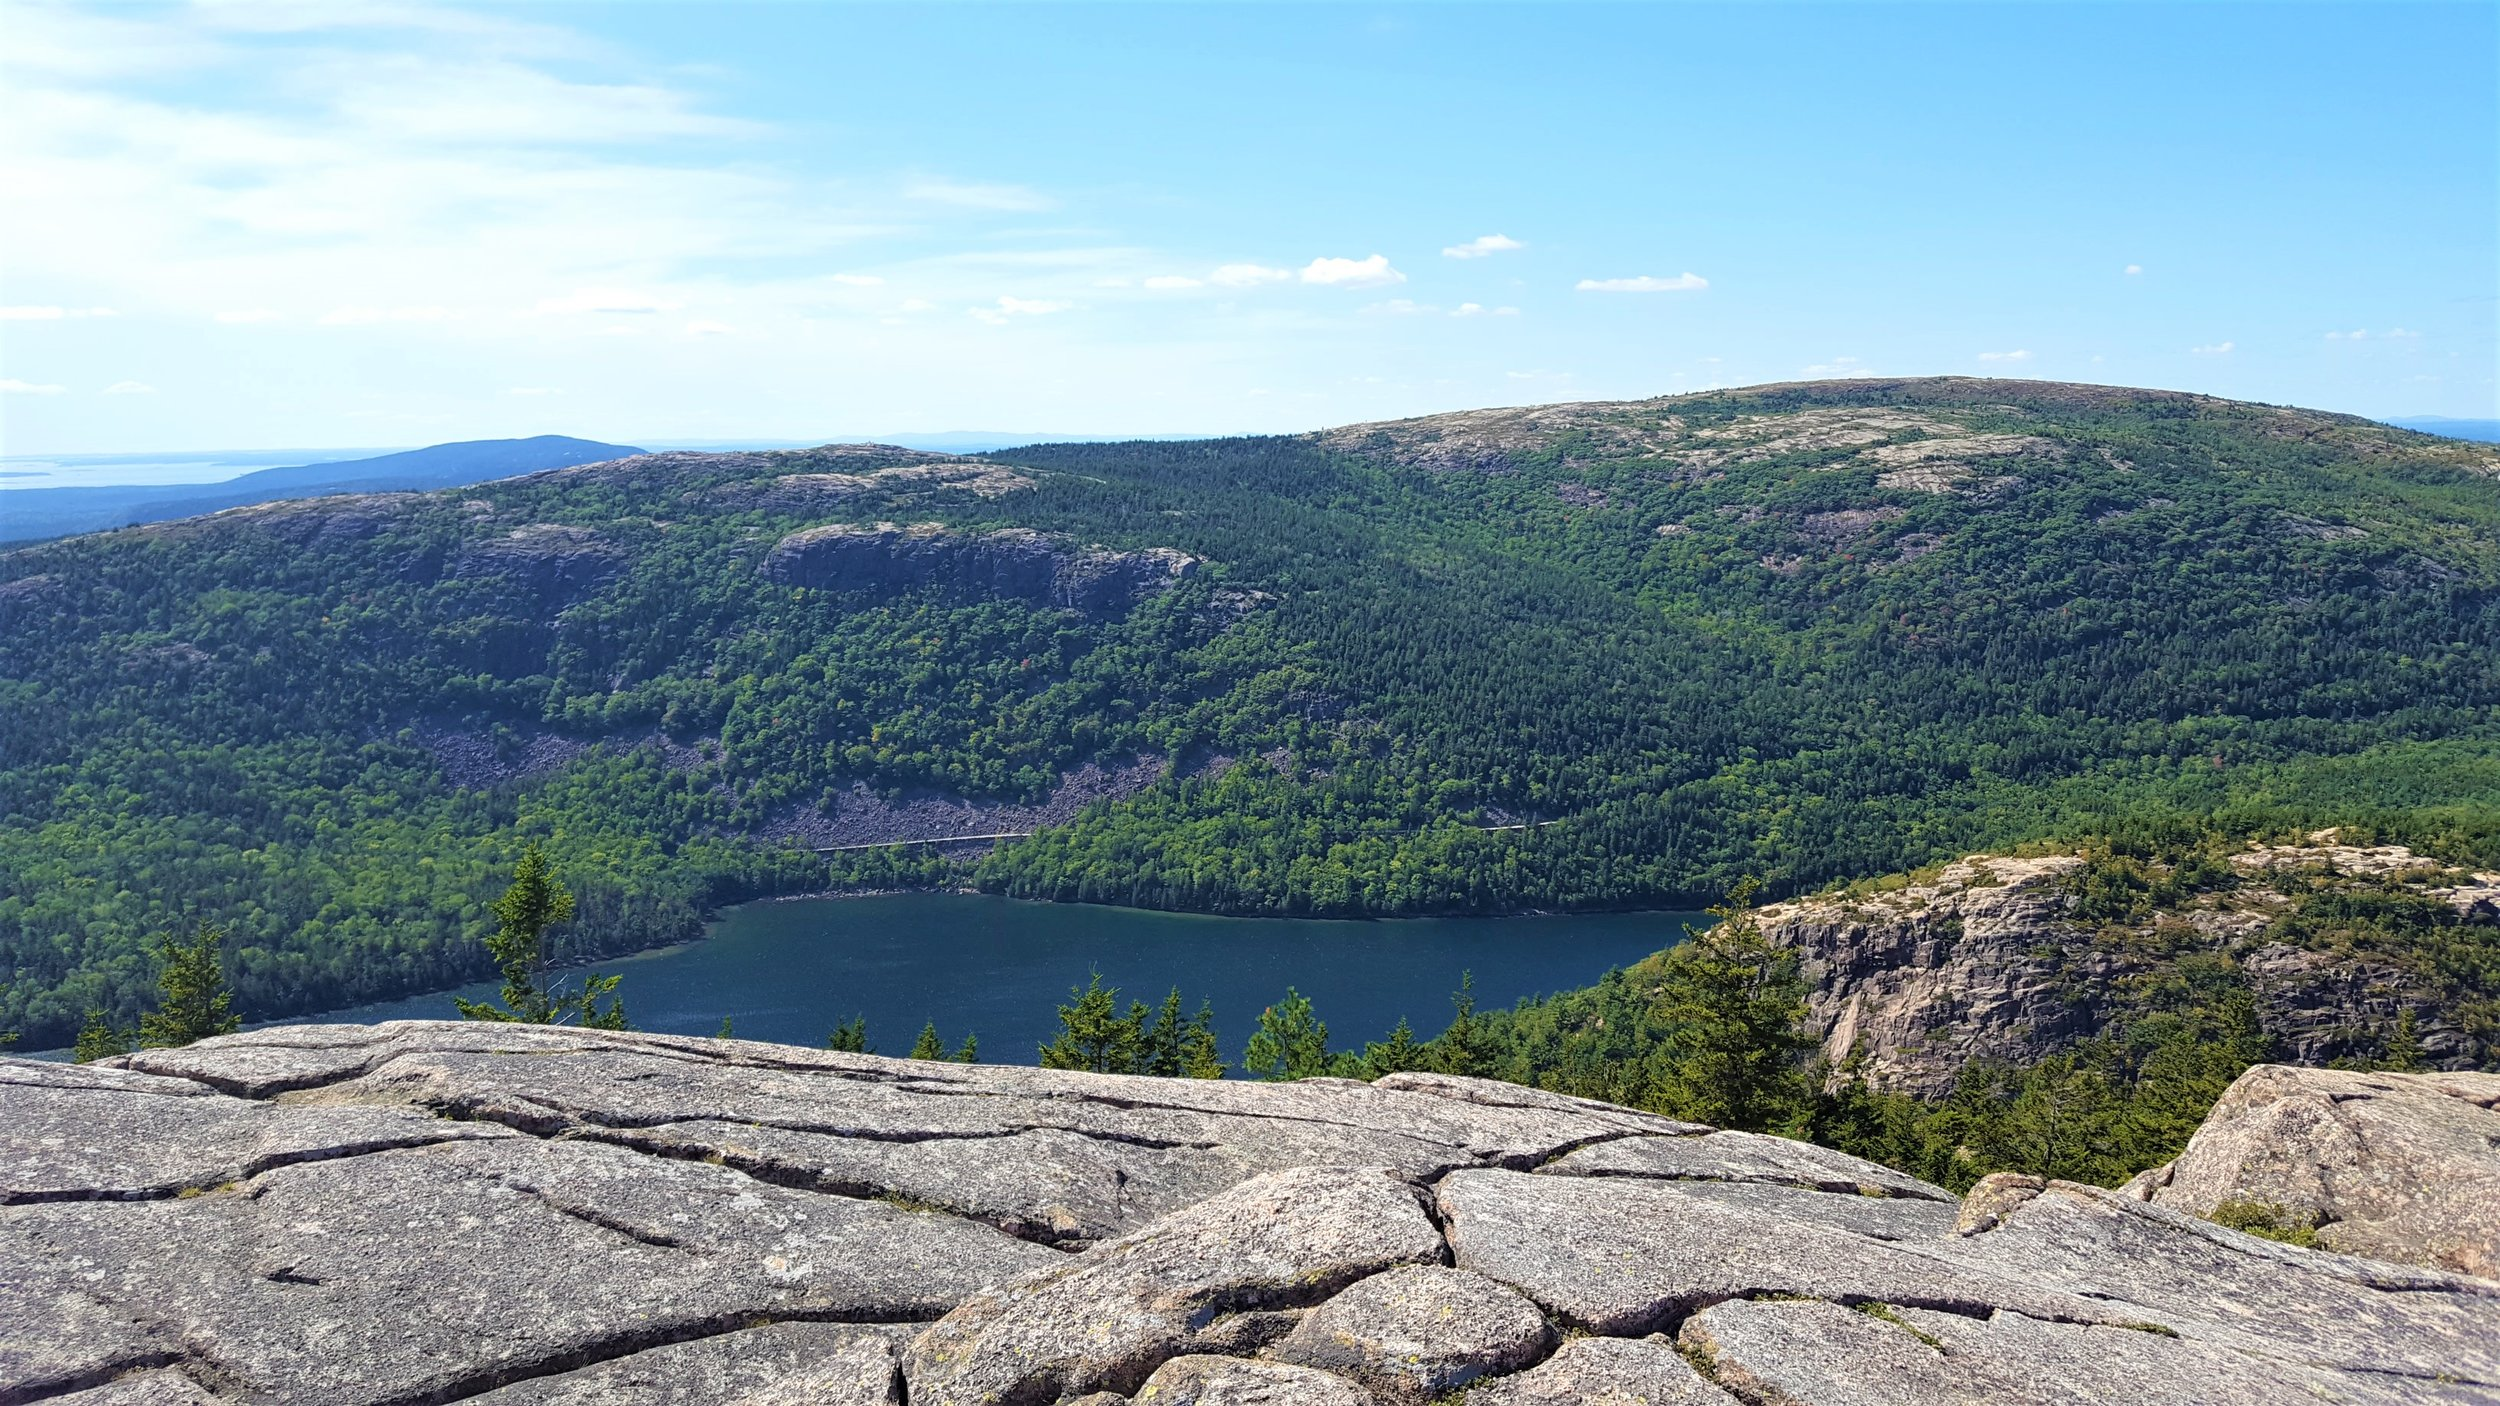 Jordan Cliffs rising above Jordan Pond seen from Pemetic Mountain